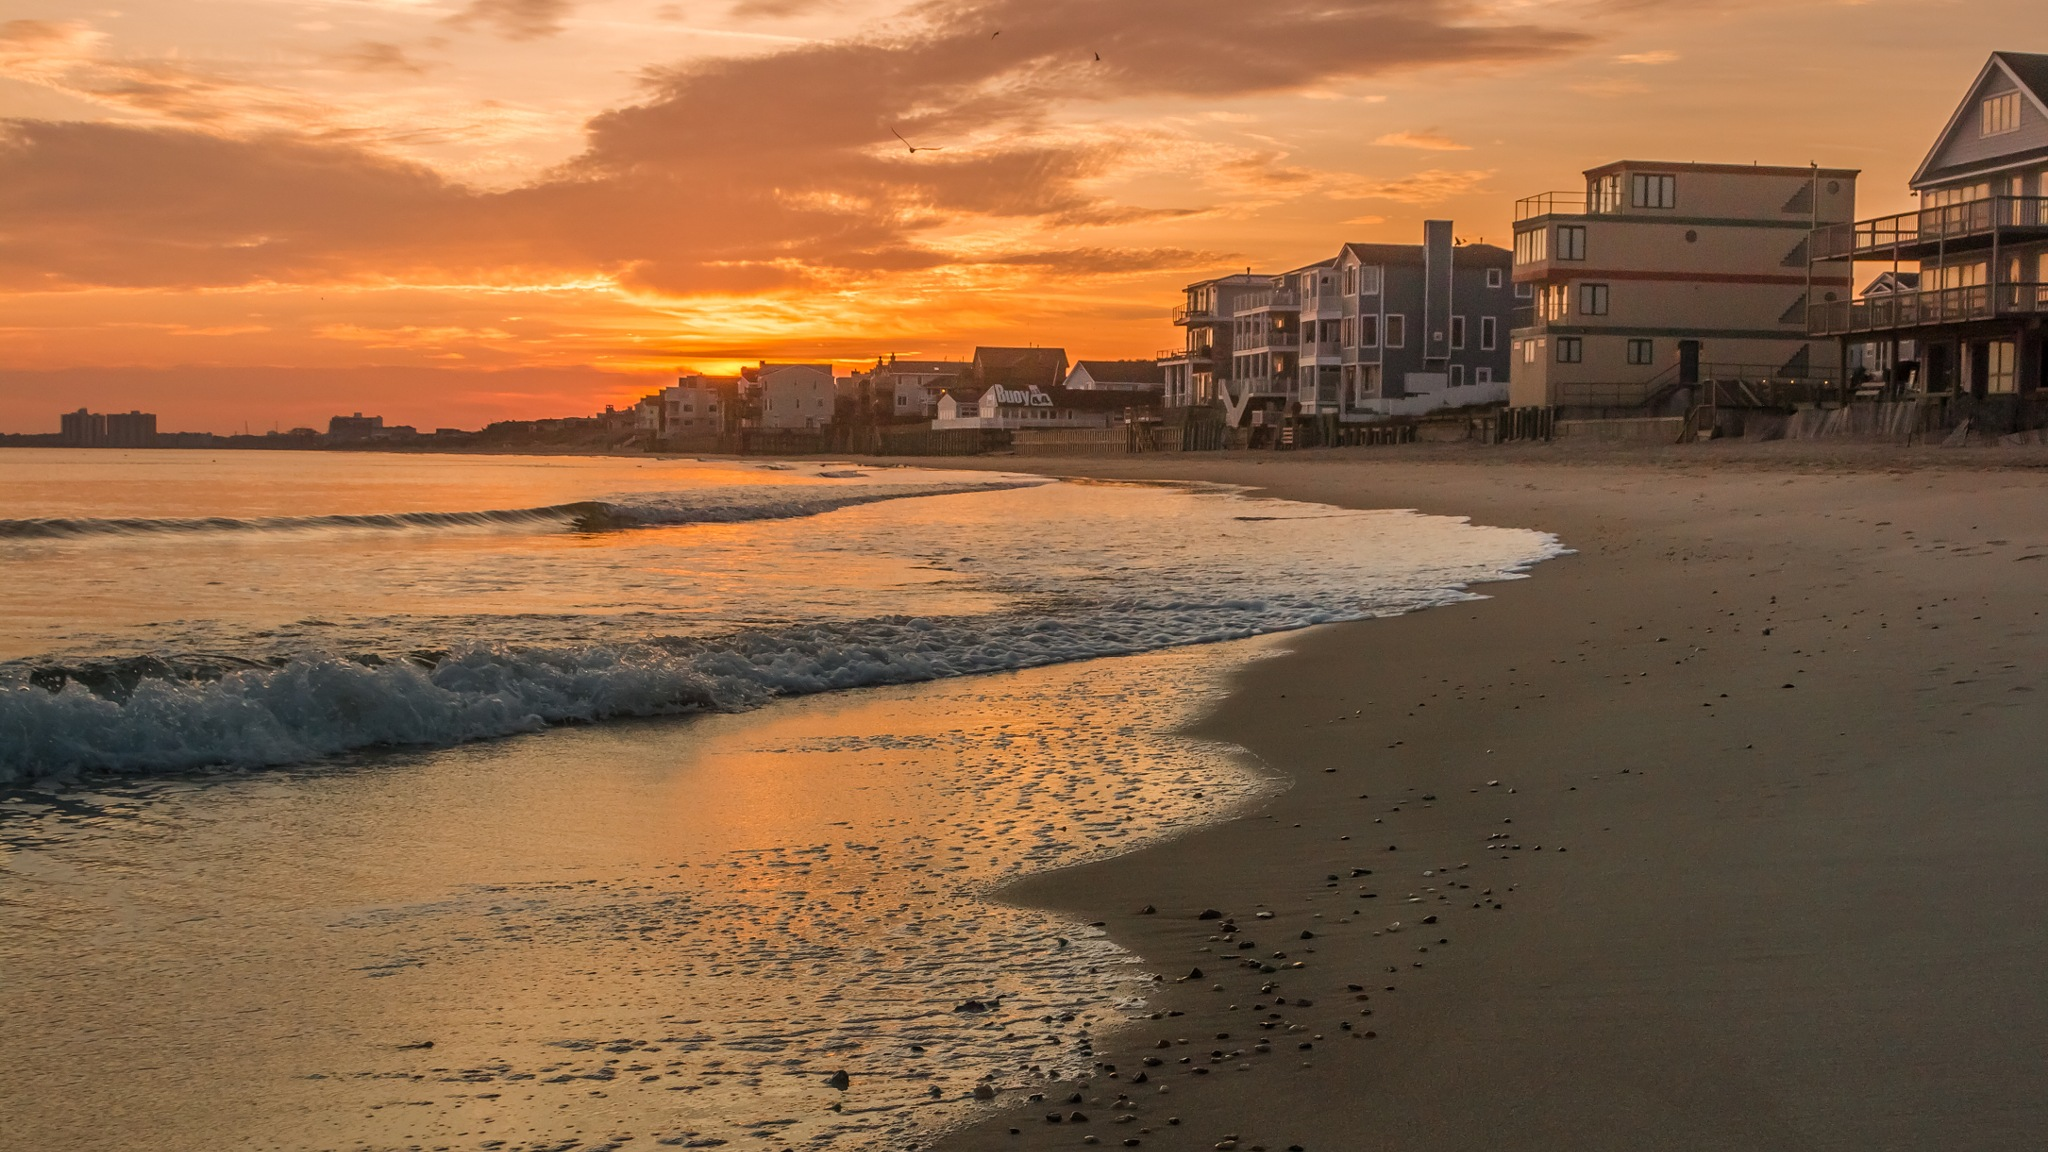 Virginia Beach at sunrise by Patrick Helms